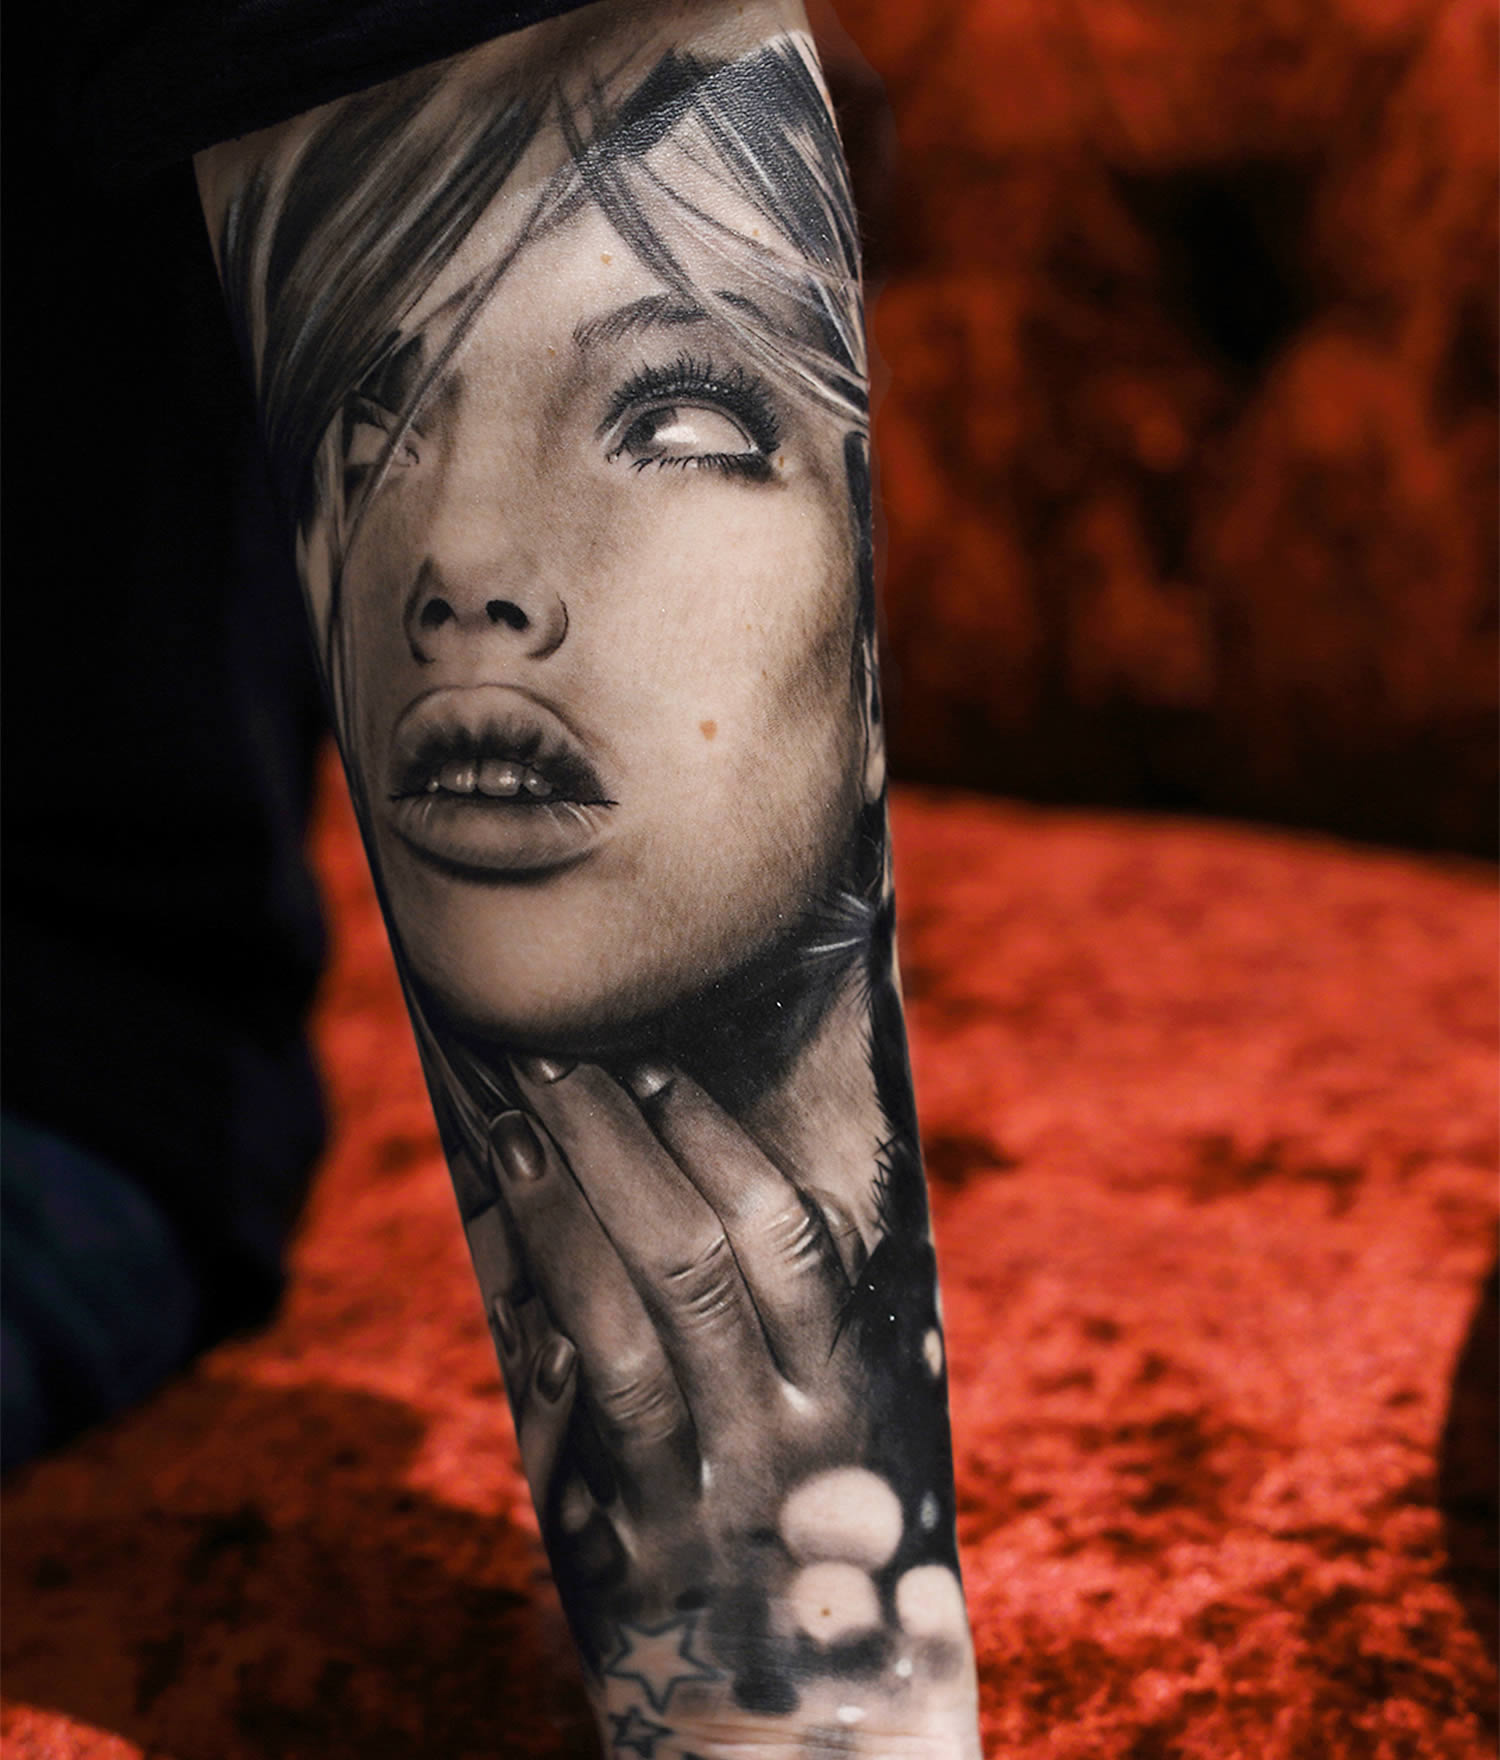 Realism Tattoo For Woman: Realistic Tattoos By Italian Artist Fiato